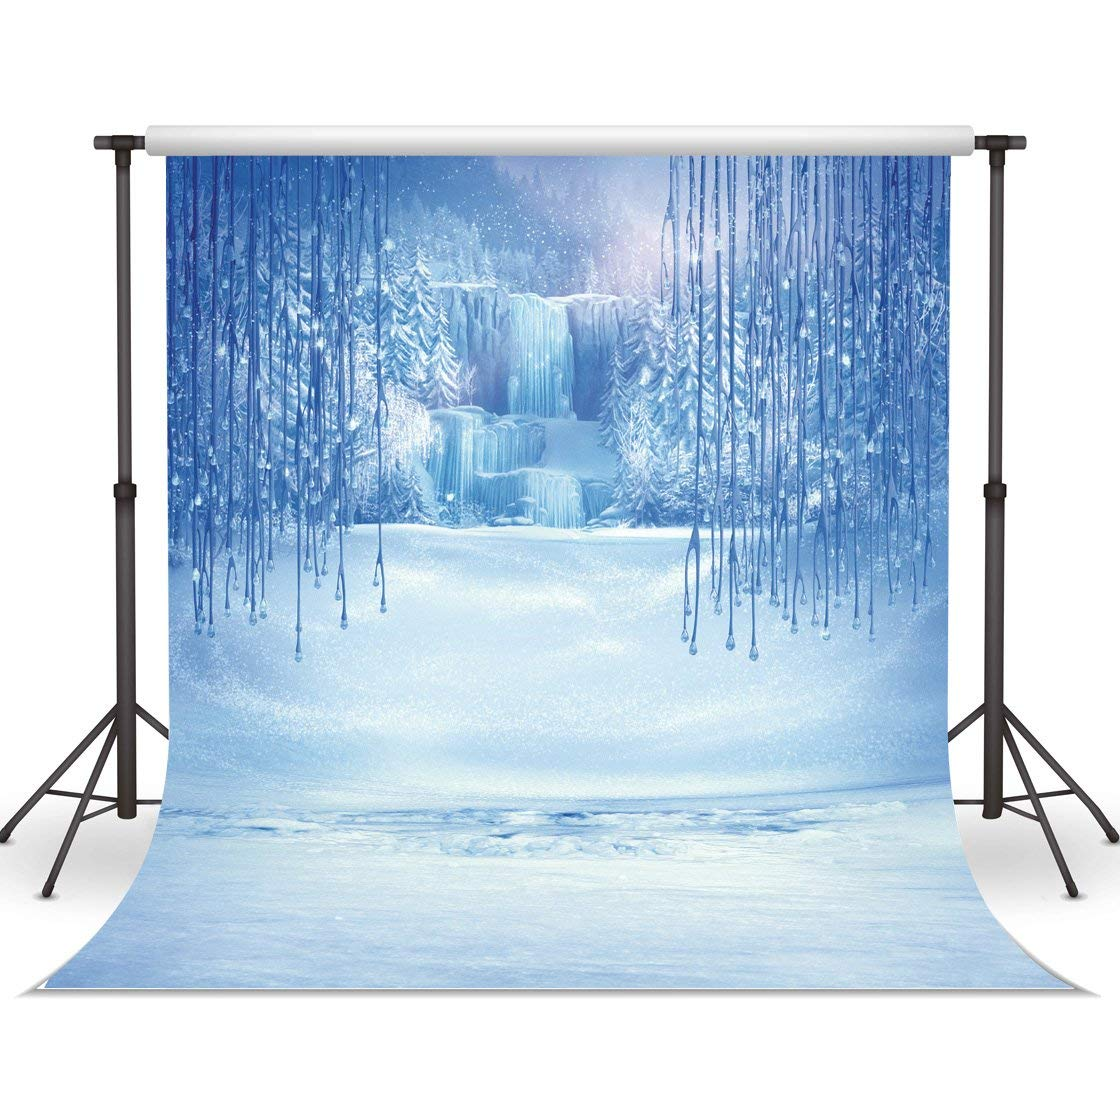 LYWYGG 5x7ft Ice and Snow White World Photography Backdrops Background Christmas Winter Frozen Snow Ice Crystal Pendant World Backdrops for Children Photo Studio Props Backdrop CP-13